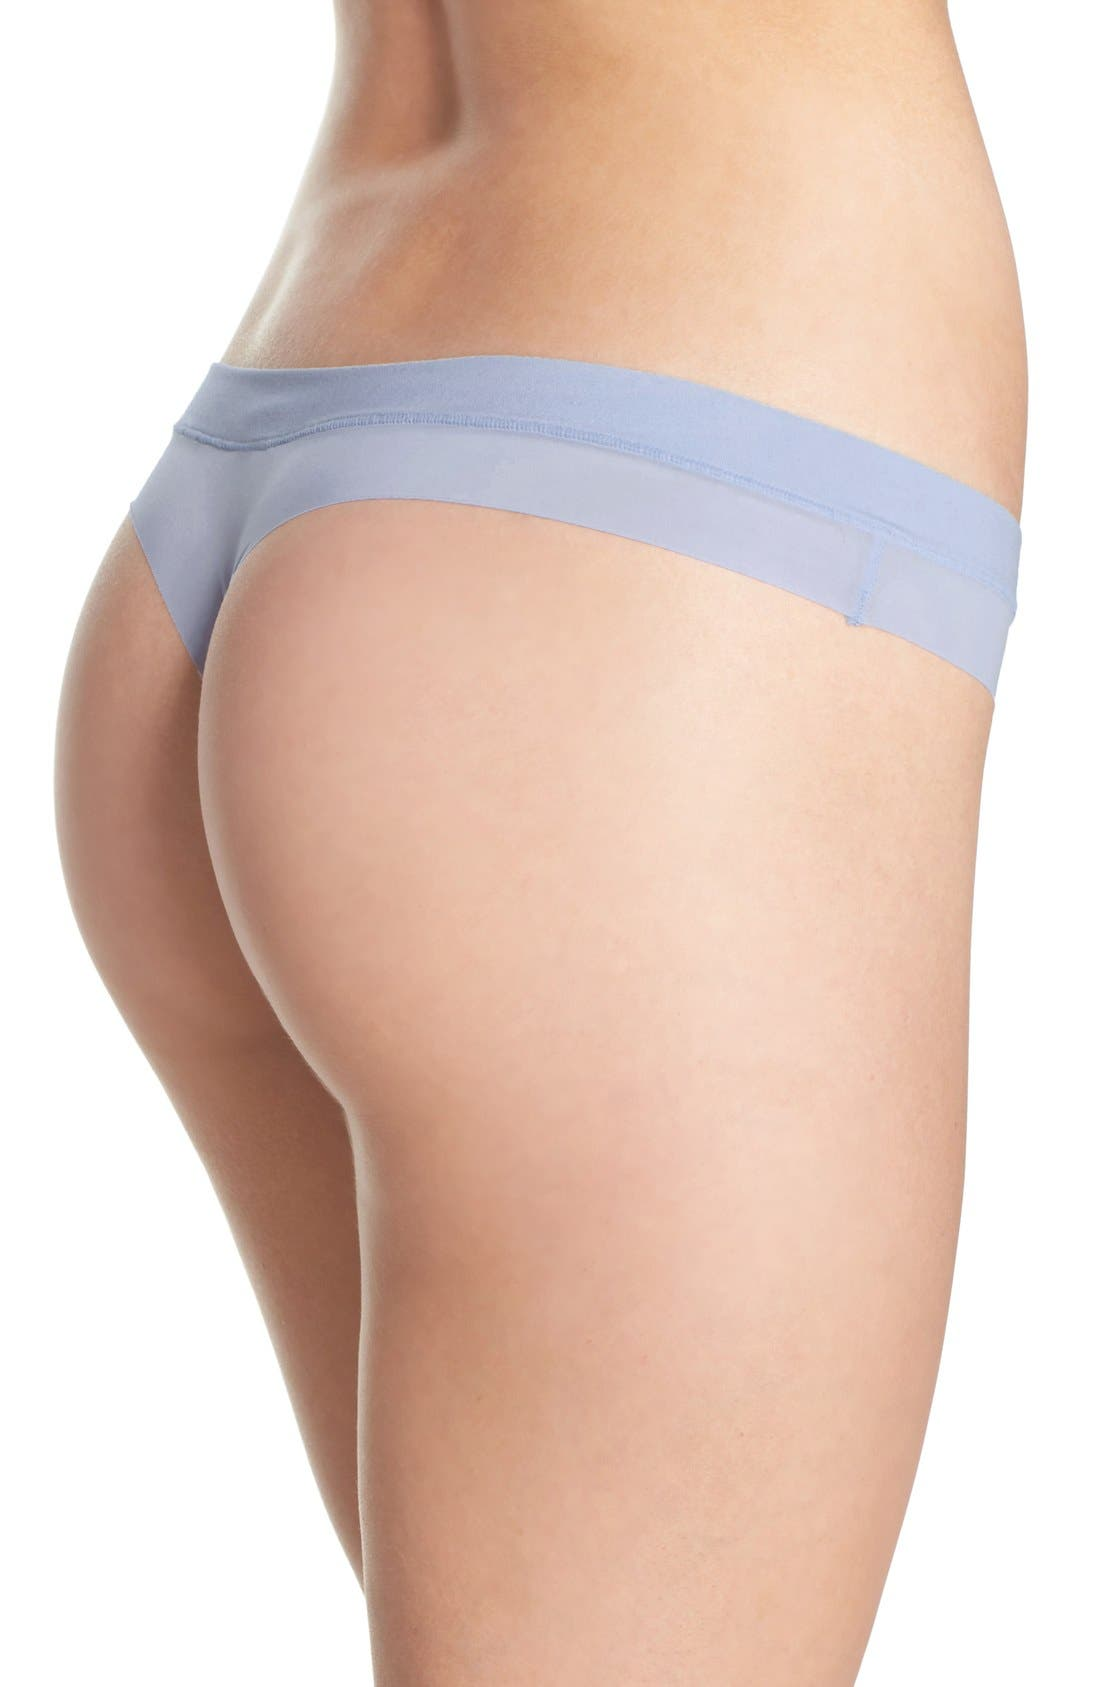 Alternate Image 2  - DKNY 'Fusion' Thong (3 for $30)